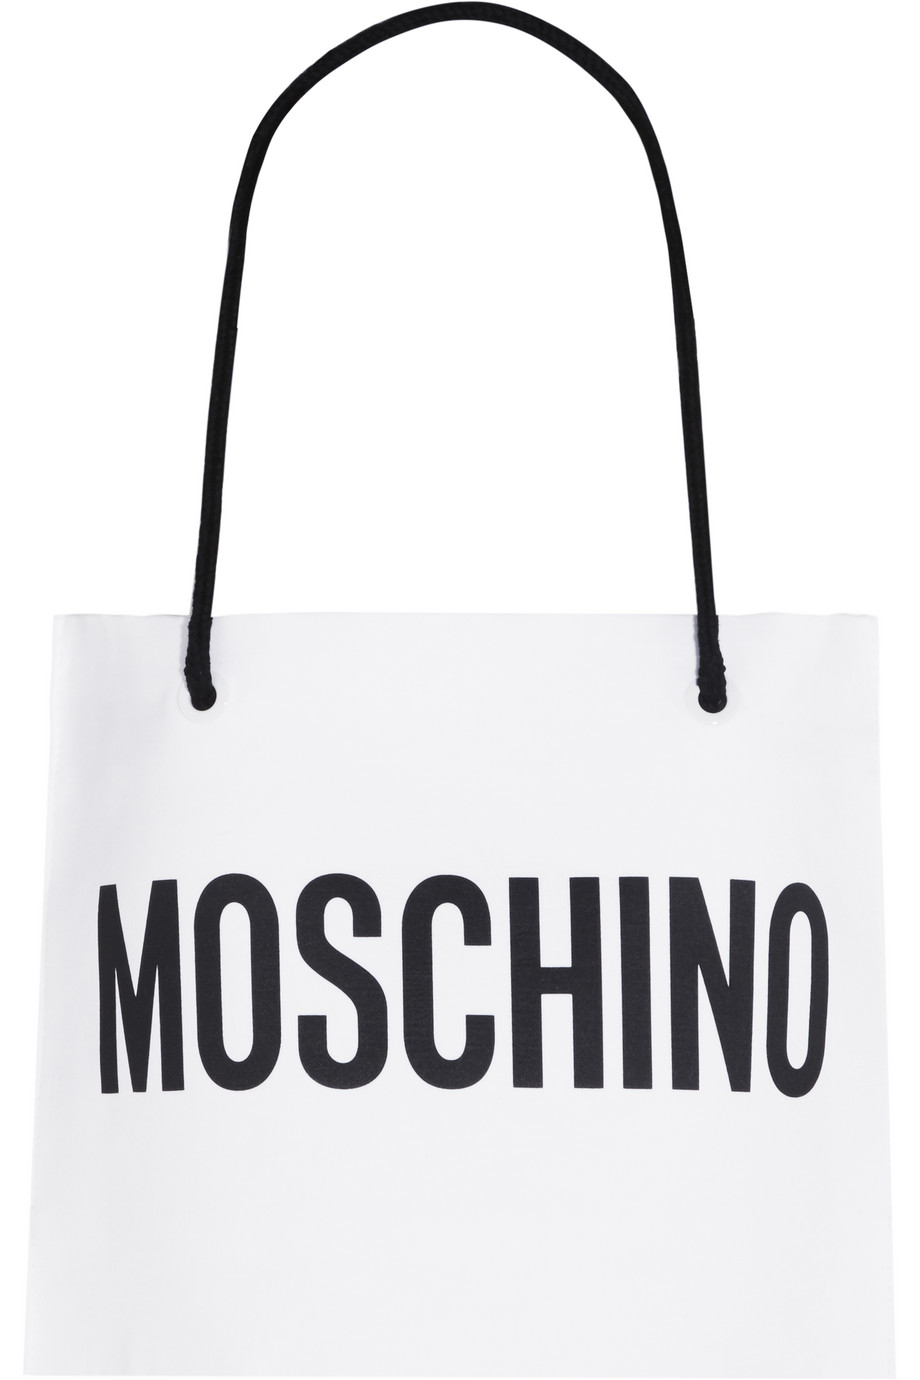 Moschino Cropped Printed Cotton Top, White, Women's, Size: 46